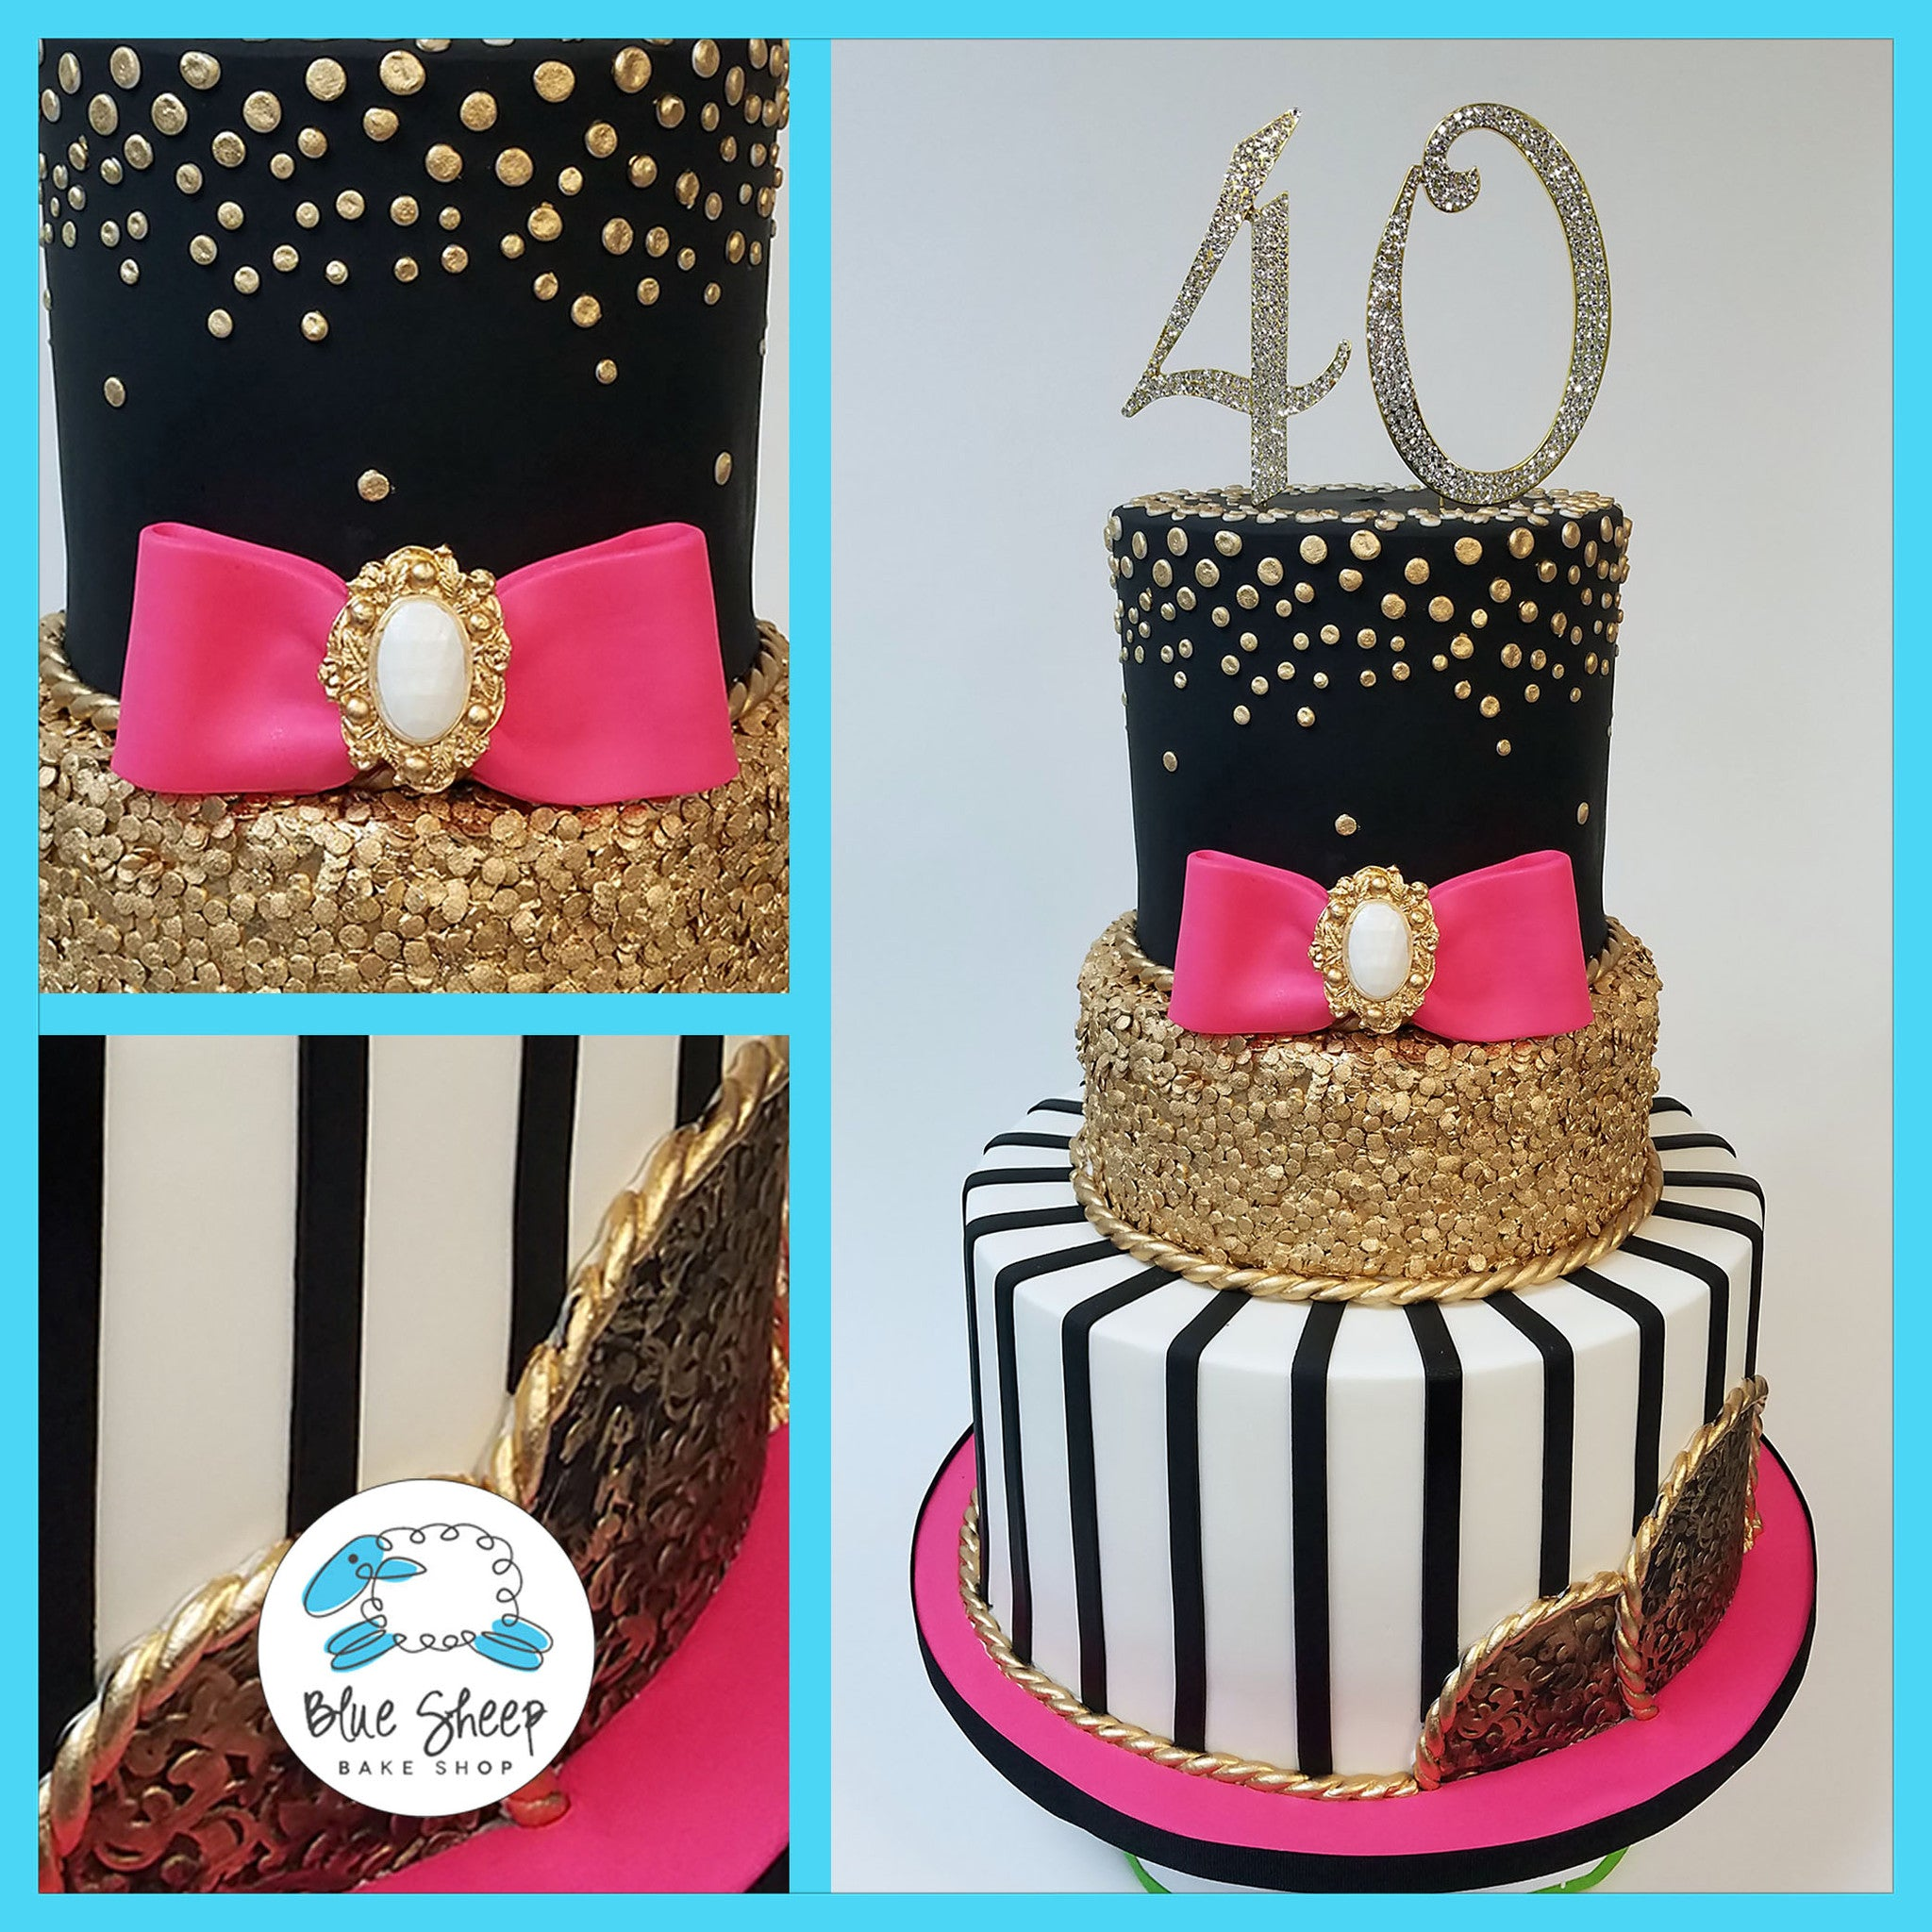 Awe Inspiring Couture Glam 40Th Birthday Cake Blue Sheep Bake Shop Funny Birthday Cards Online Inifodamsfinfo